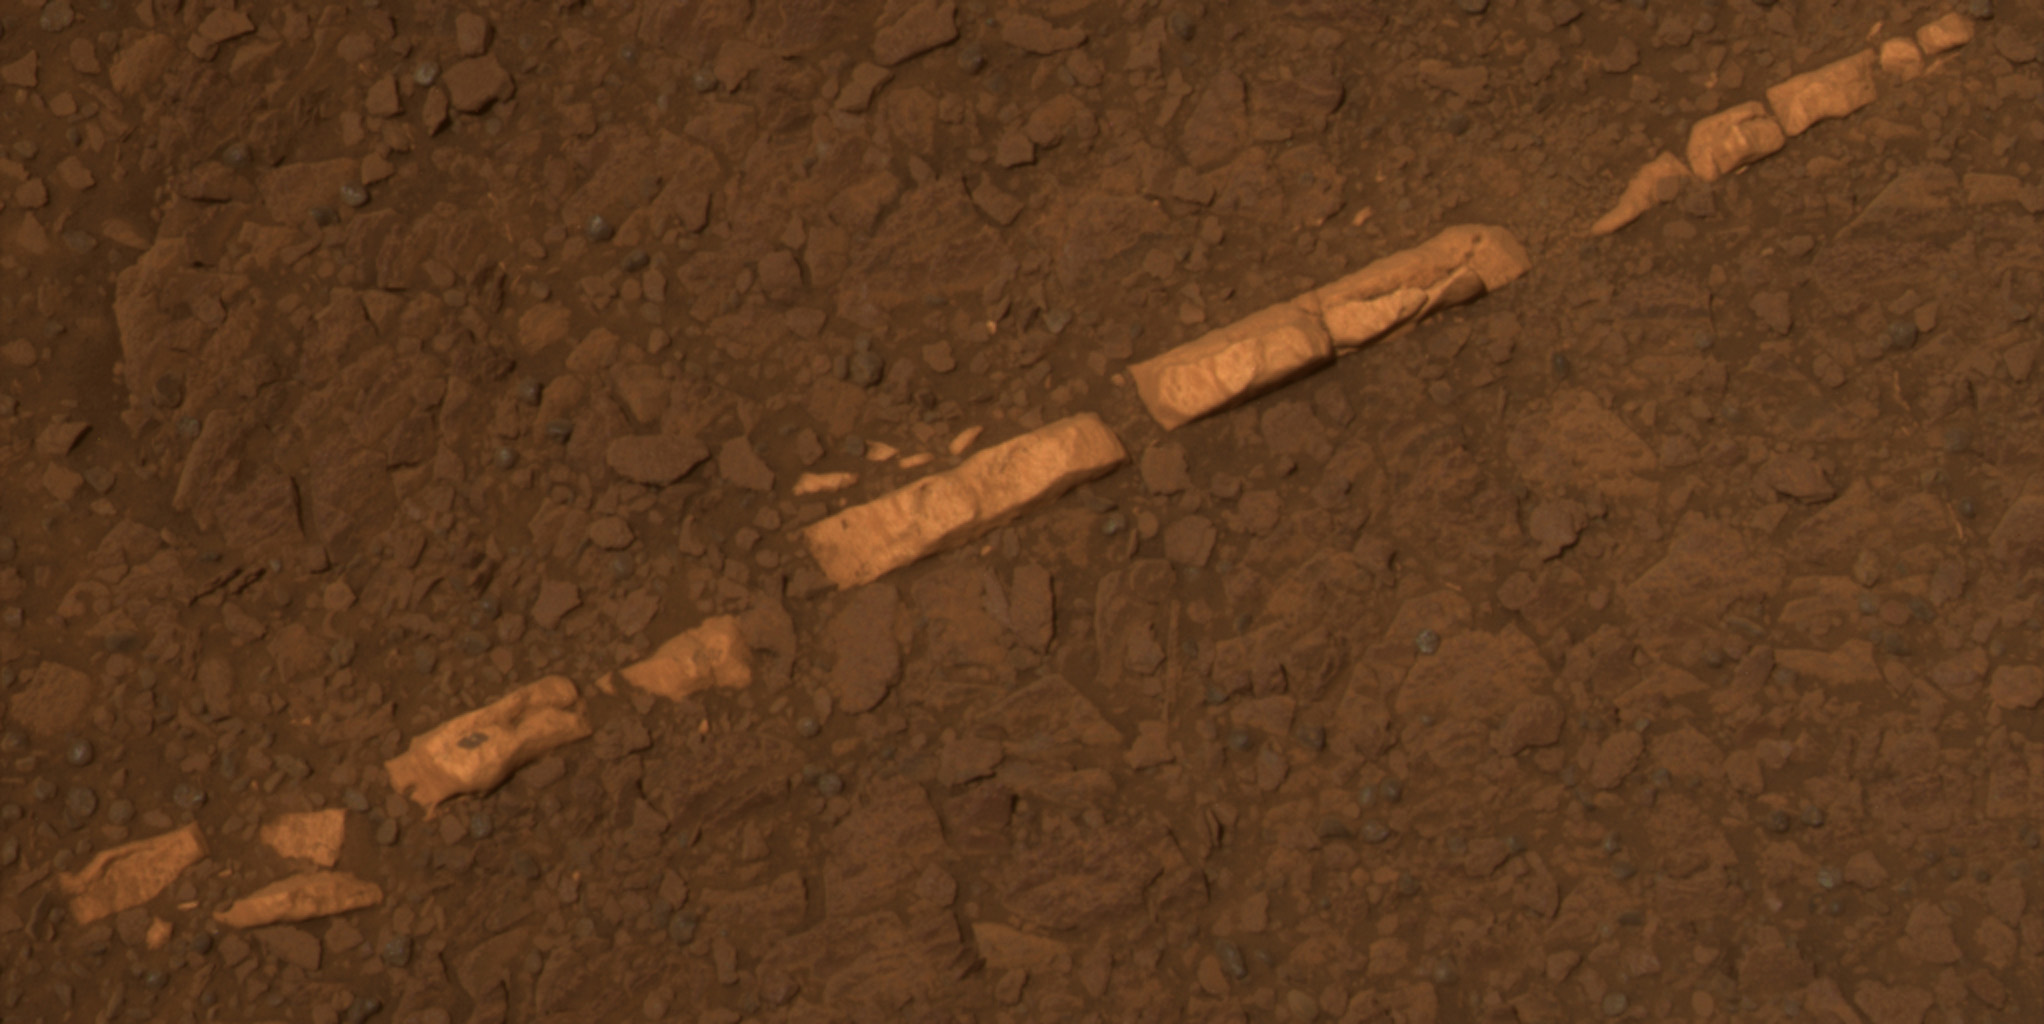 Mineral vein on the surface of Mars